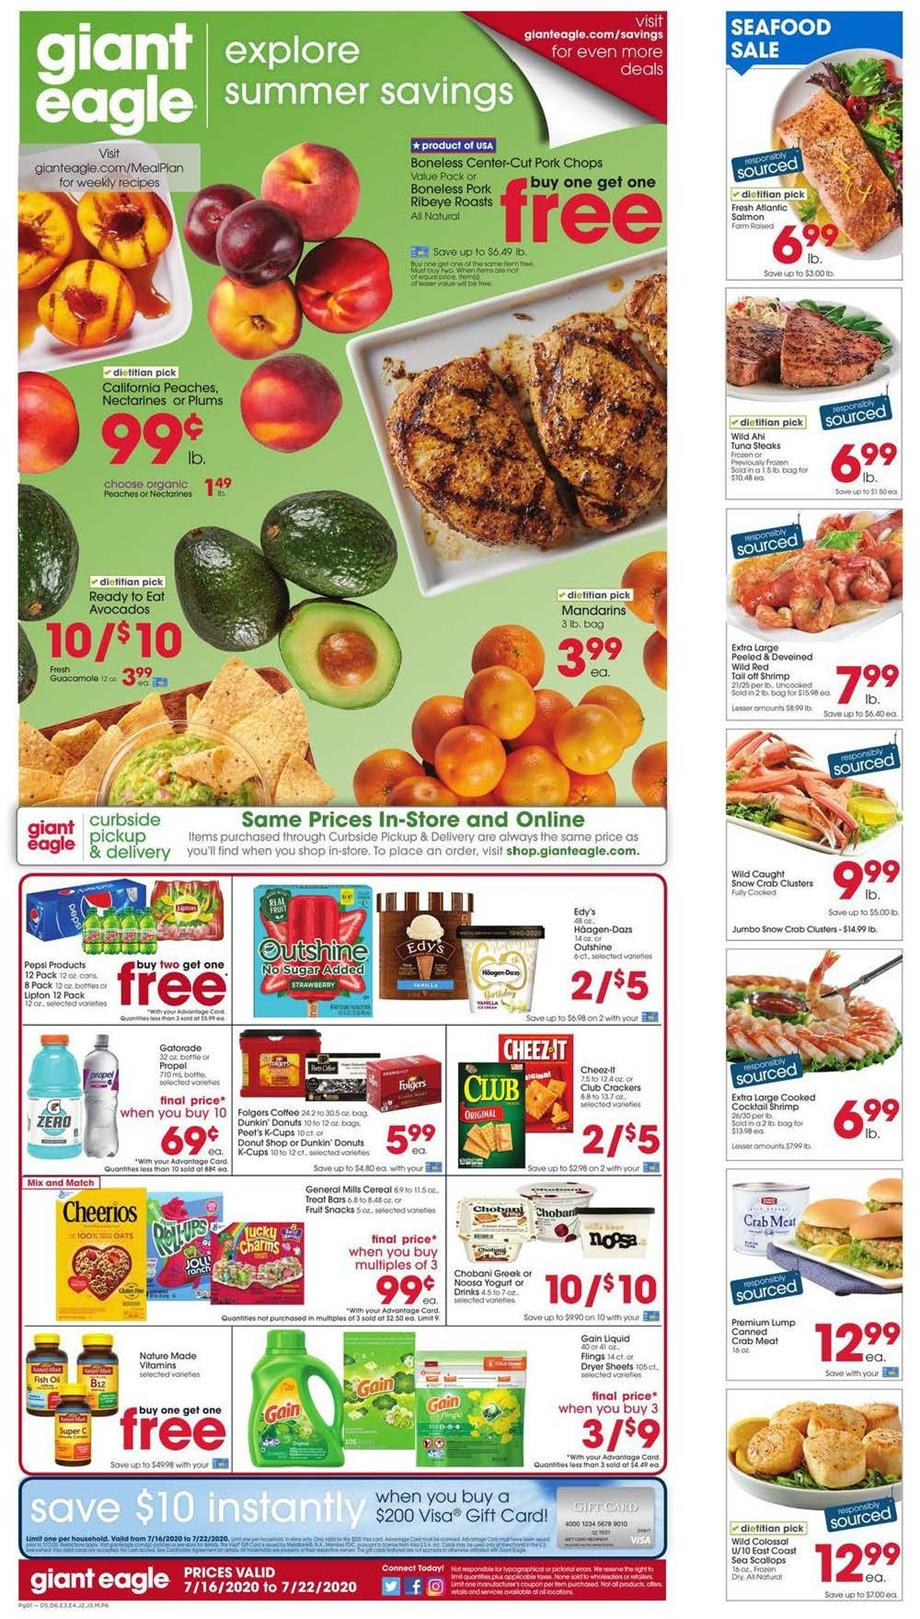 giant eagle mid july weekly ad valid from jun 16 22 2020